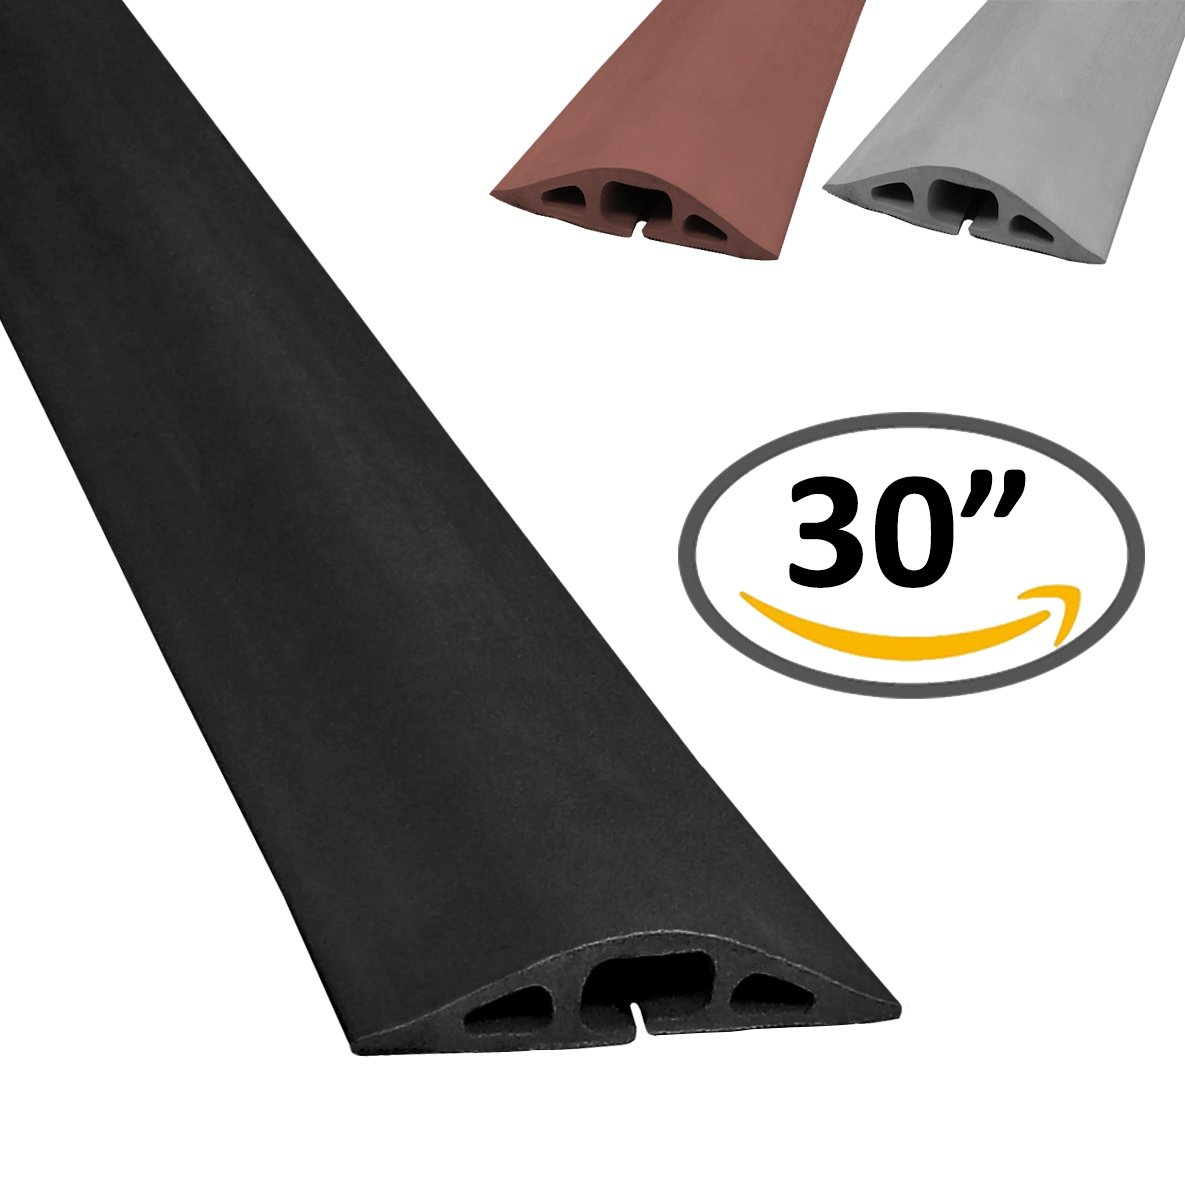 Amazon.com: D-2 Rubber Duct Cord Cover - Length: 5FT - Color: Black ...